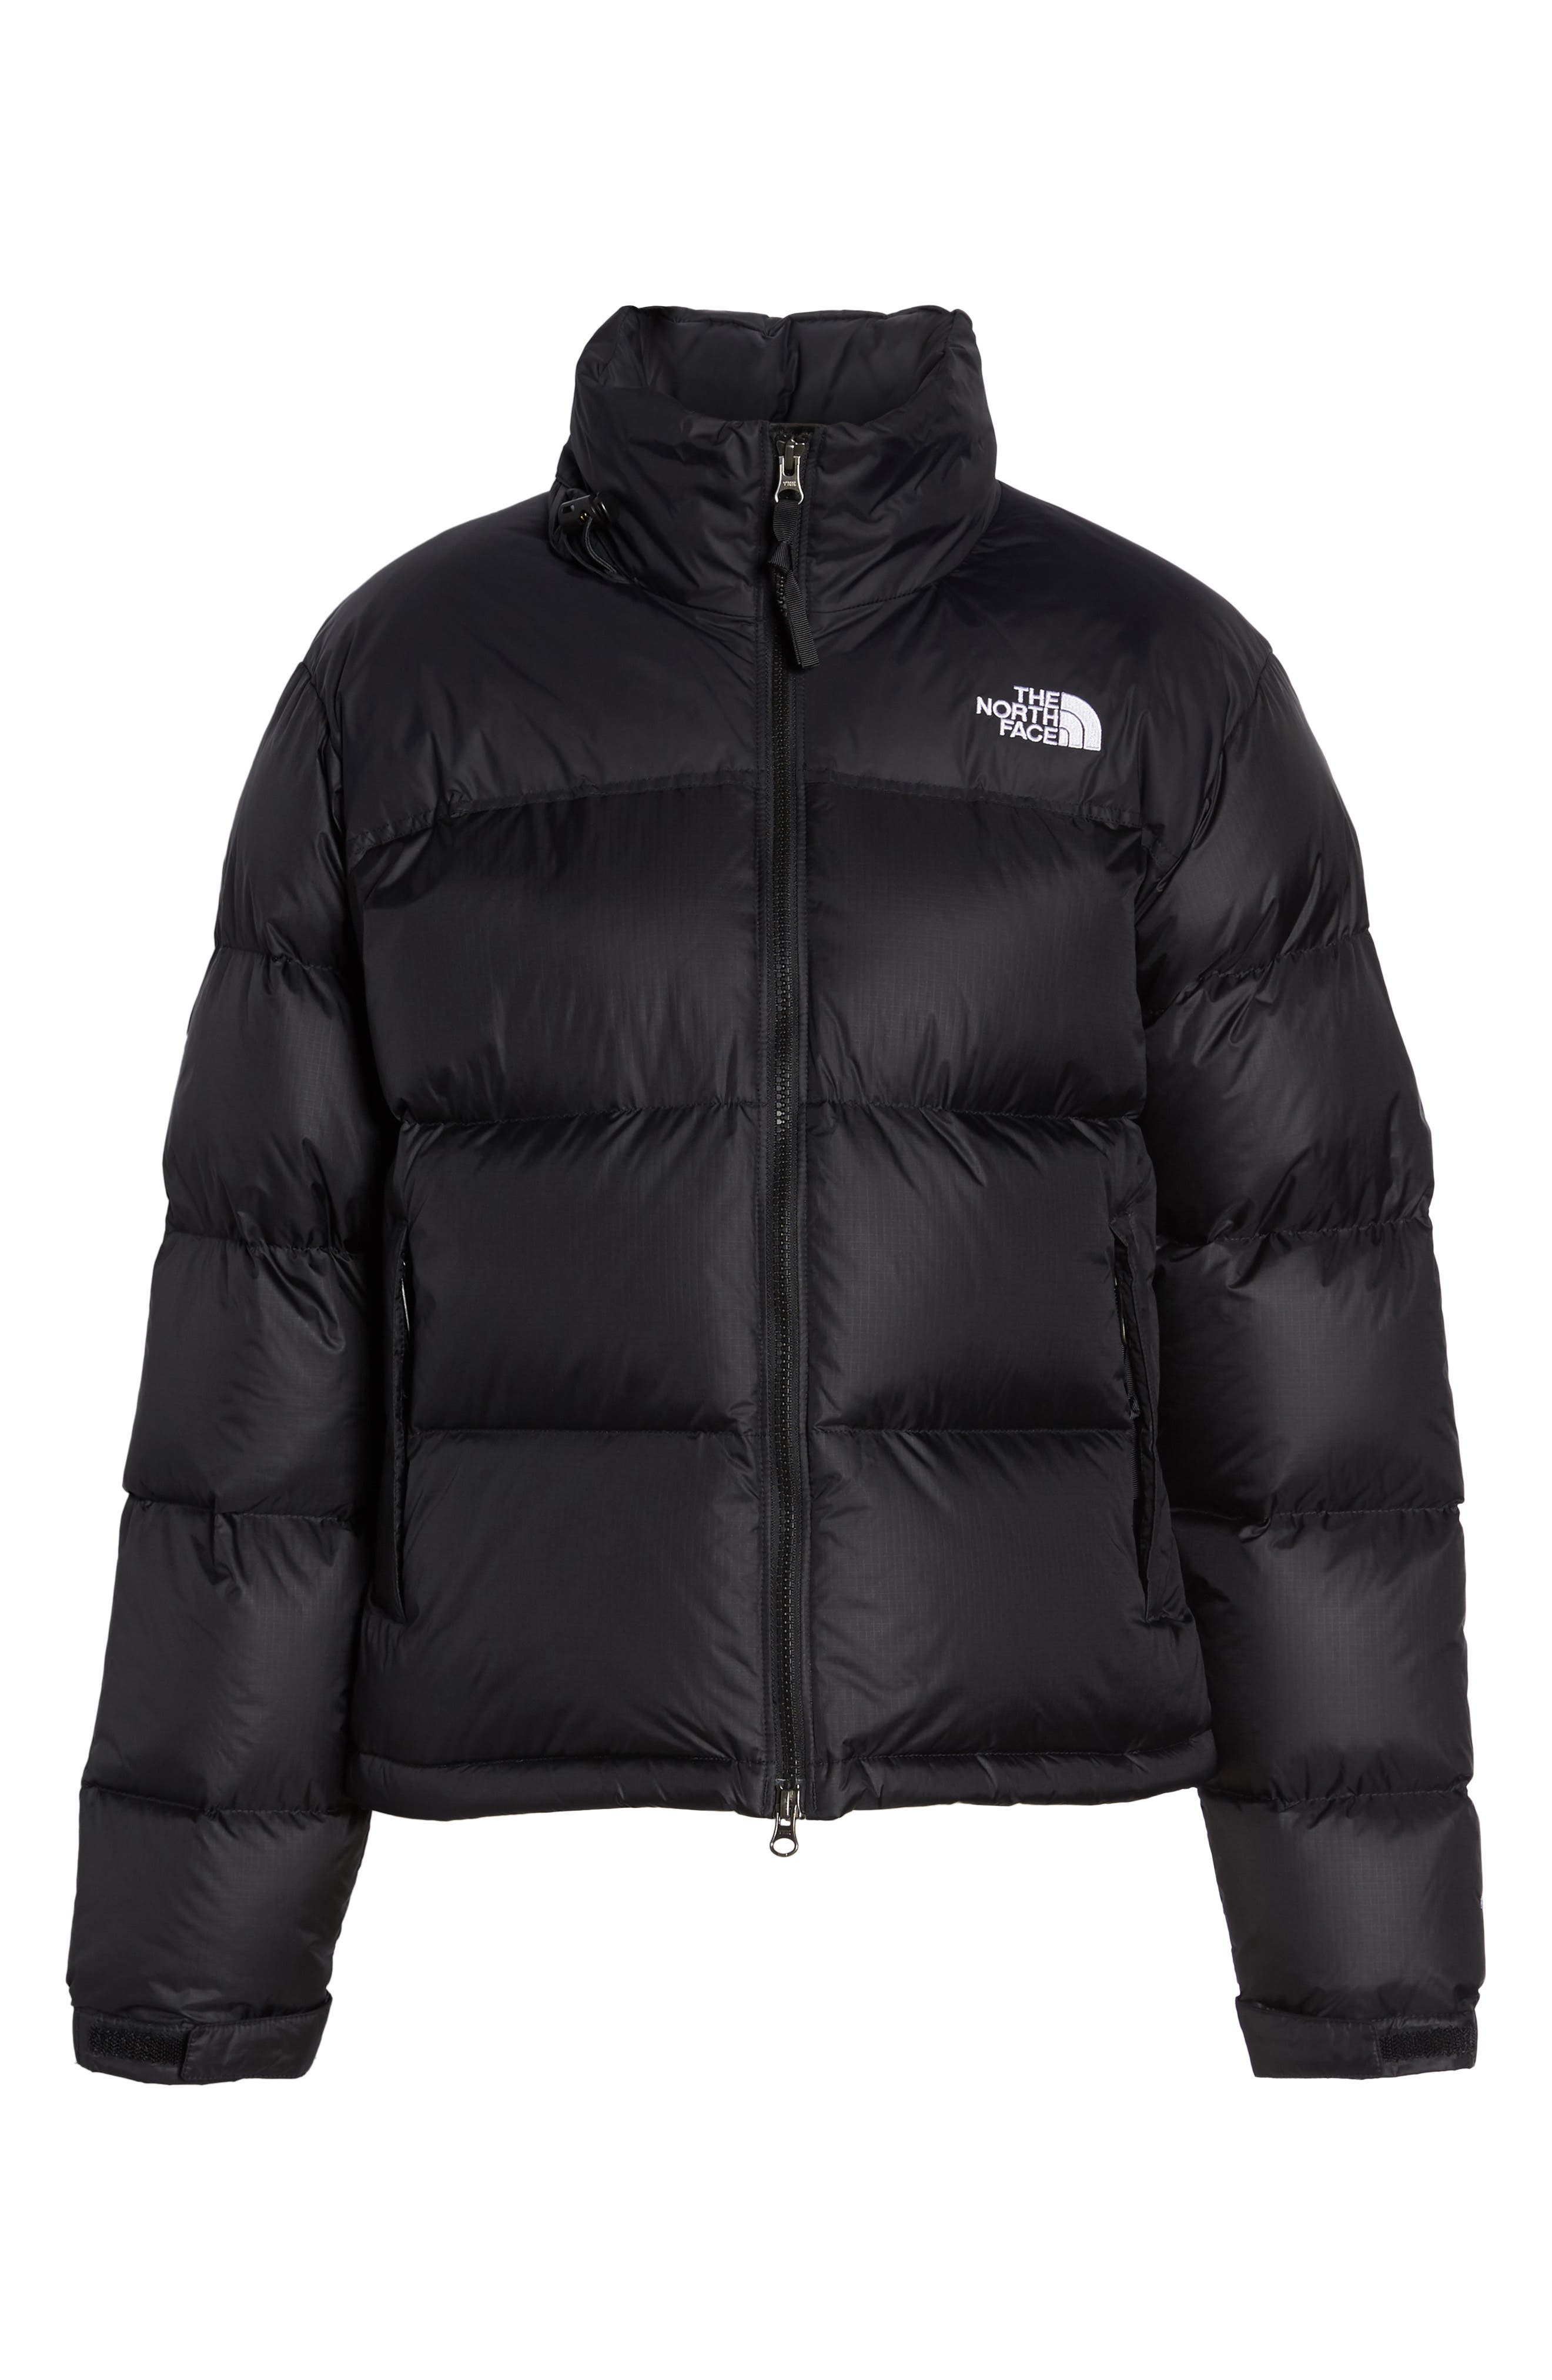 Nuptse 1996 Packable Quilted Down Jacket,                             Alternate thumbnail 6, color,                             TNF BLACK